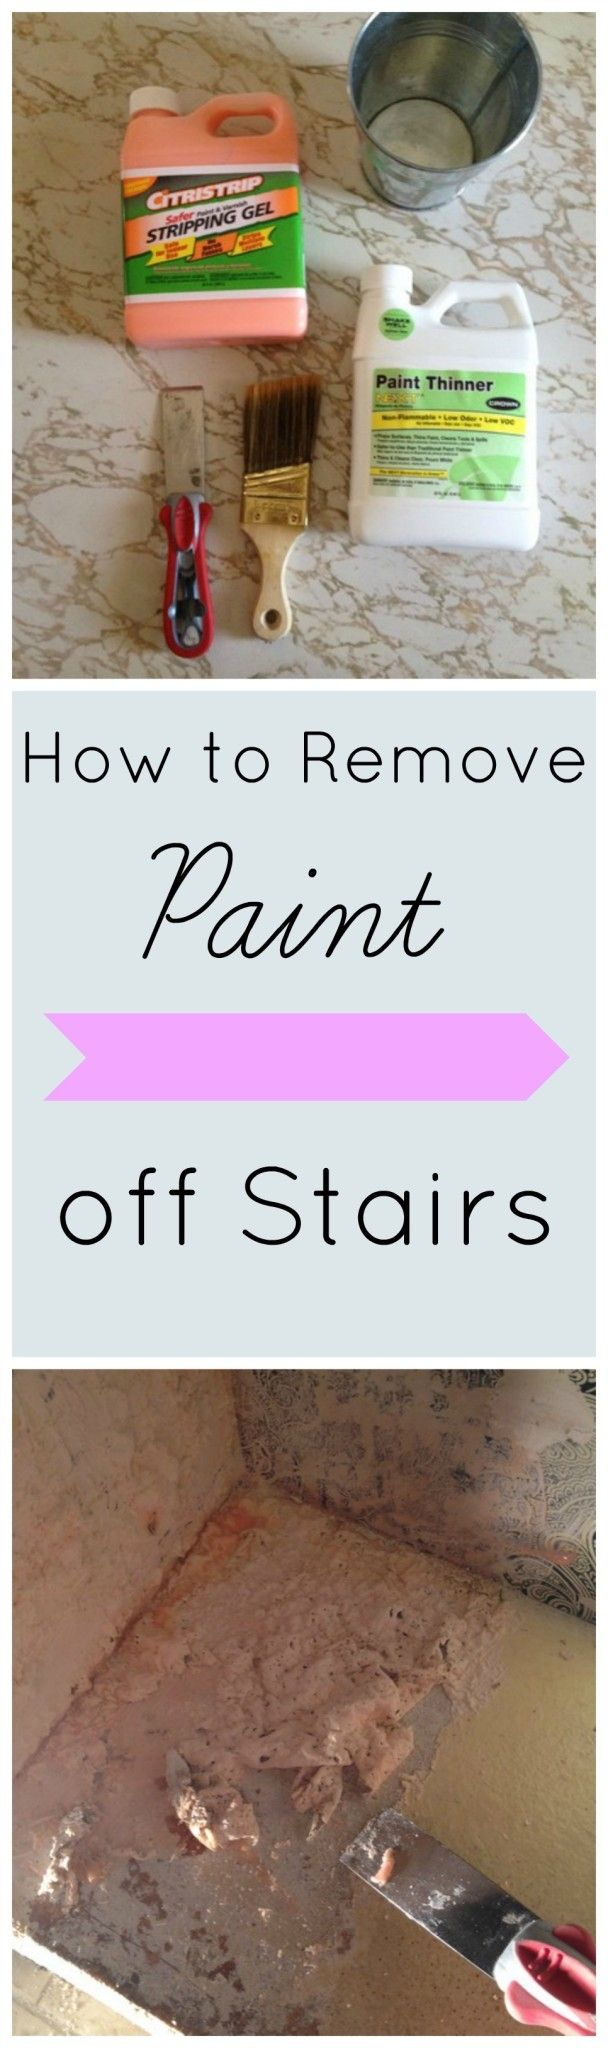 Last week we talked about my plans to put in a stair runner here. That link goes over the steps to measure and plan for a stair runner, so start there first if you are doing this project. Today we are talking about how to removing paint off stairs. As a reminder this is how …